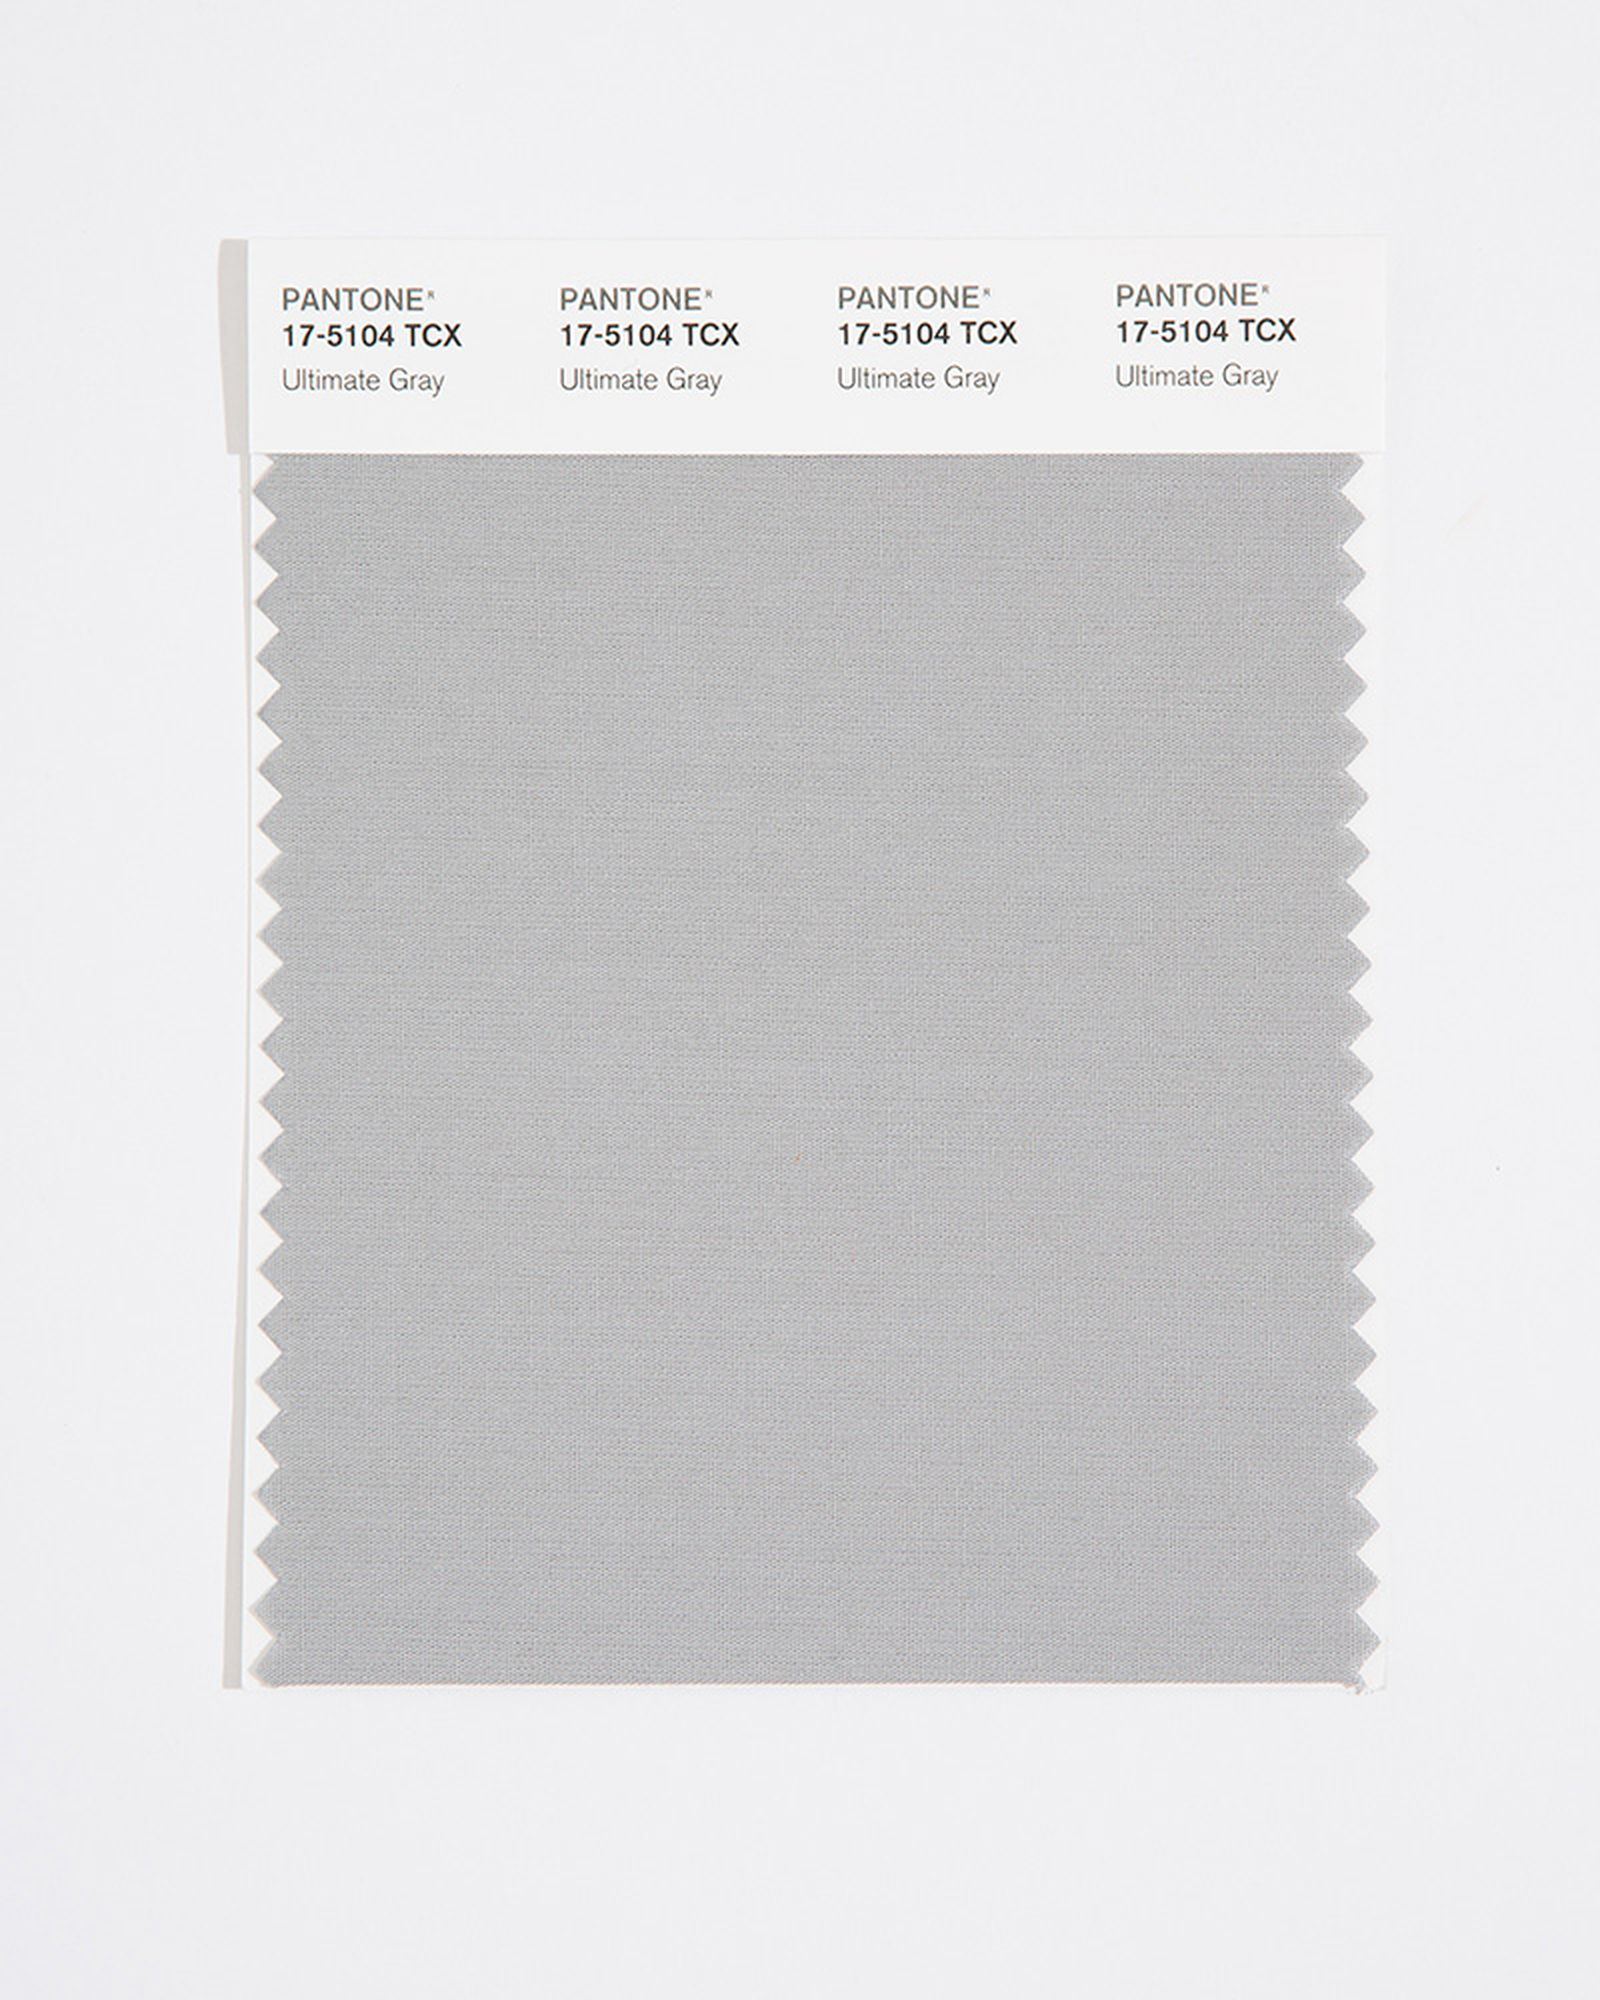 pantone-color-of-the-year-2021-02